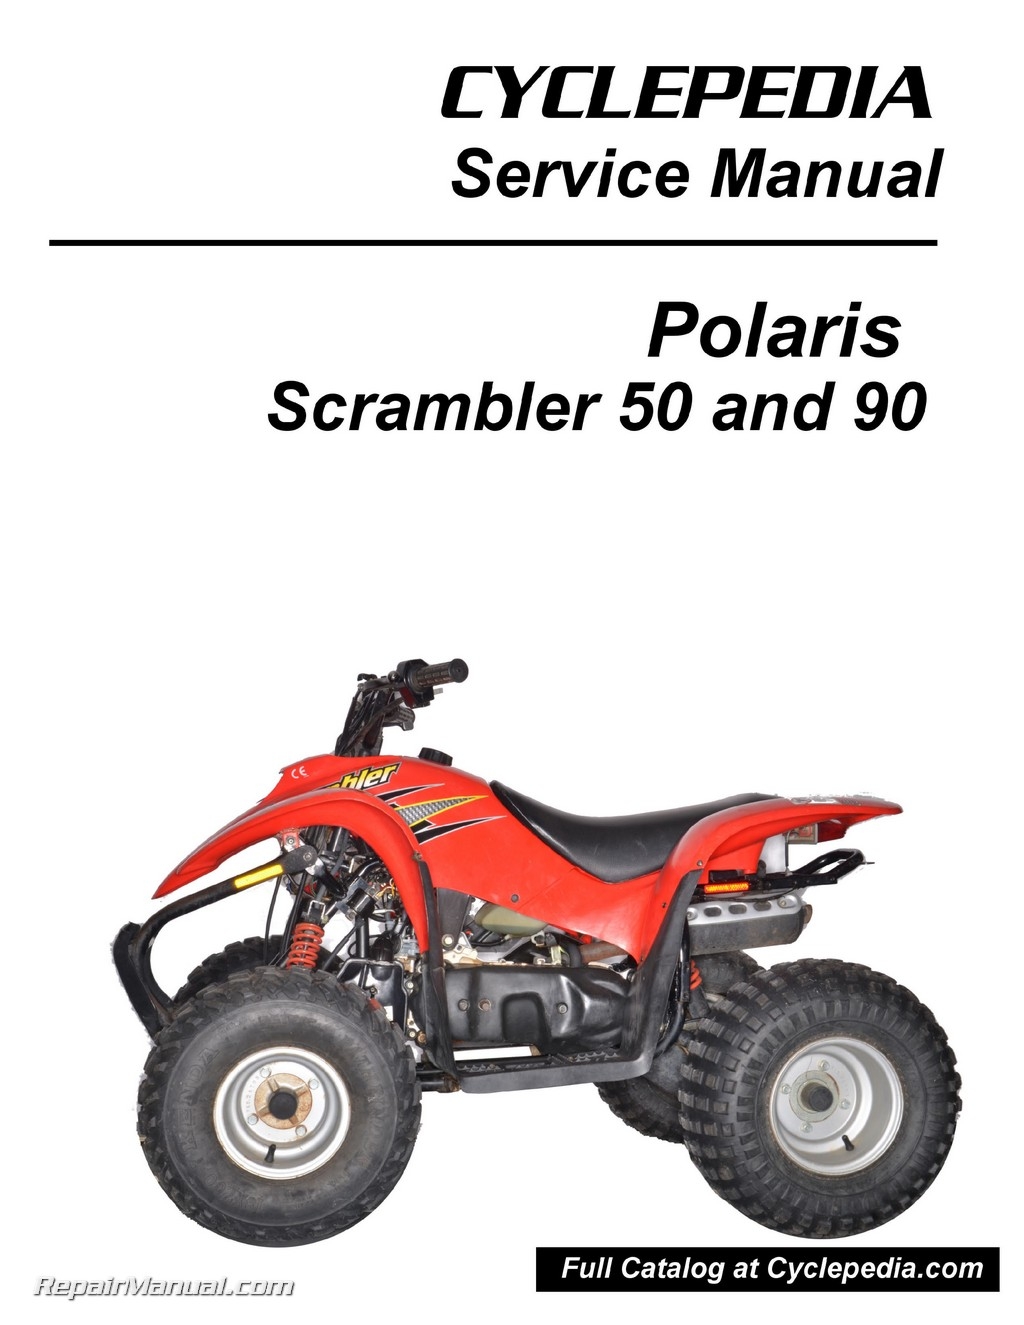 Polaris Atv Parts Wiring Diagram Great Installation Of Sportsman 500 Ignition 50cc 90cc Scrambler Print Service Manual By Cyclepedia Rh Repairmanual Com